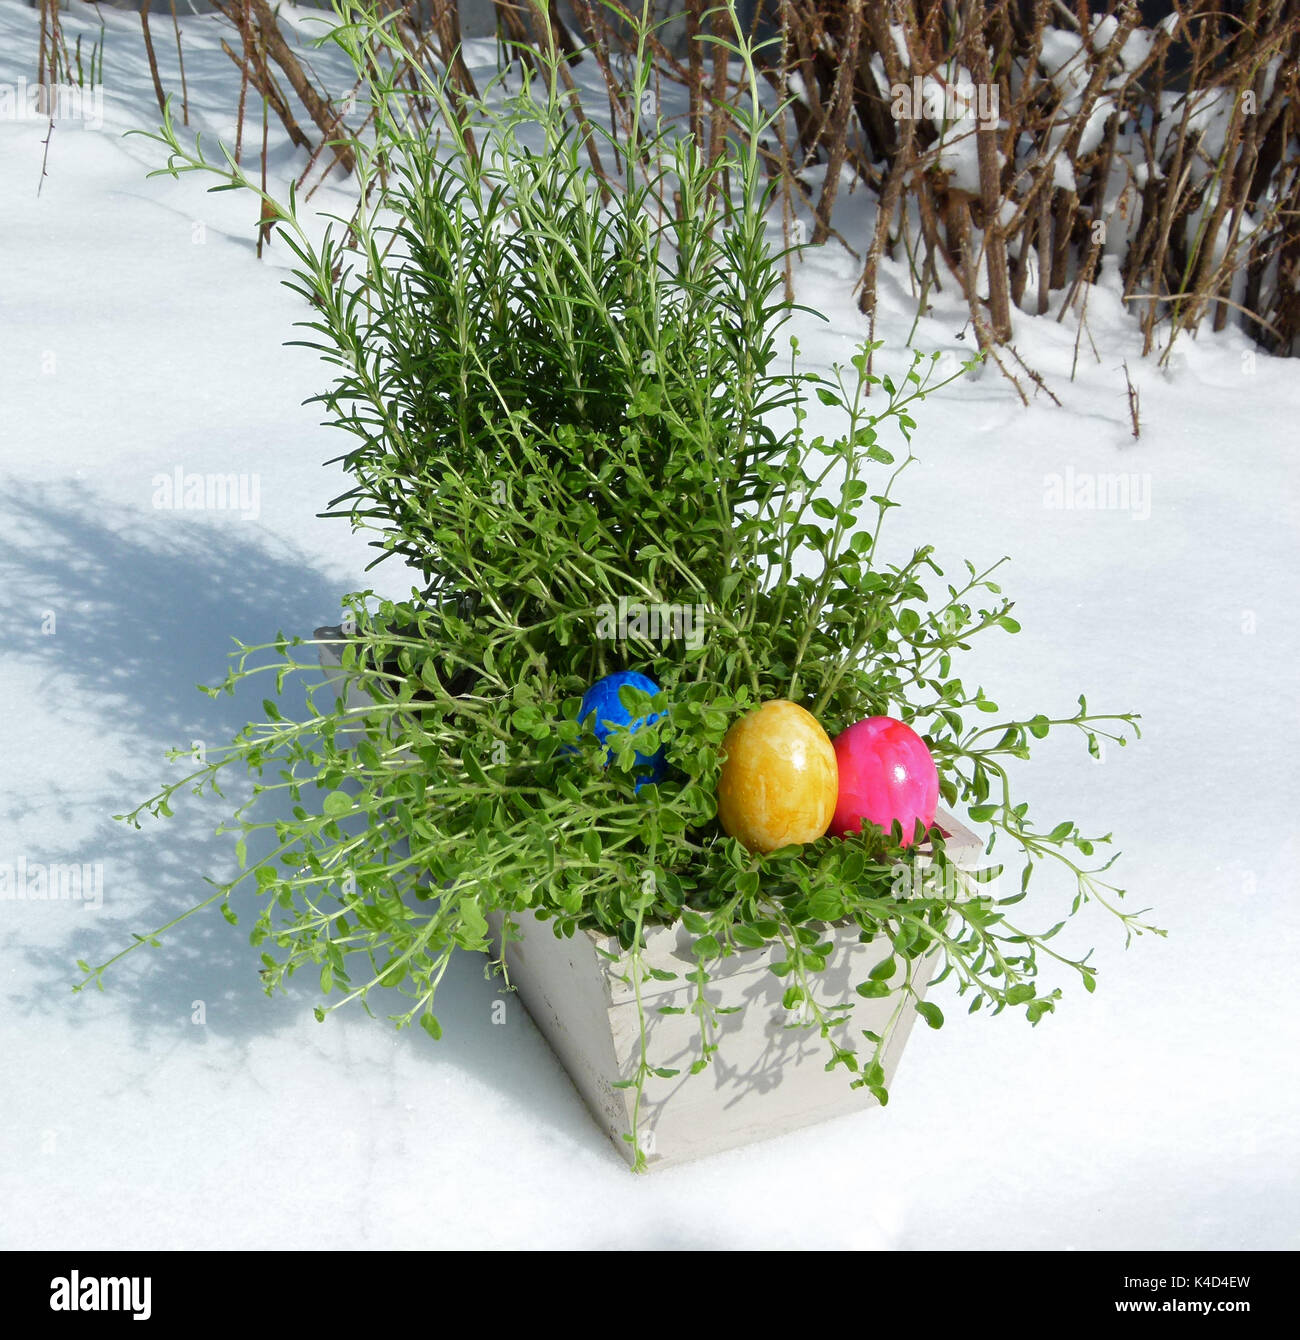 symbol for snowy easter stock photos amp symbol for snowy